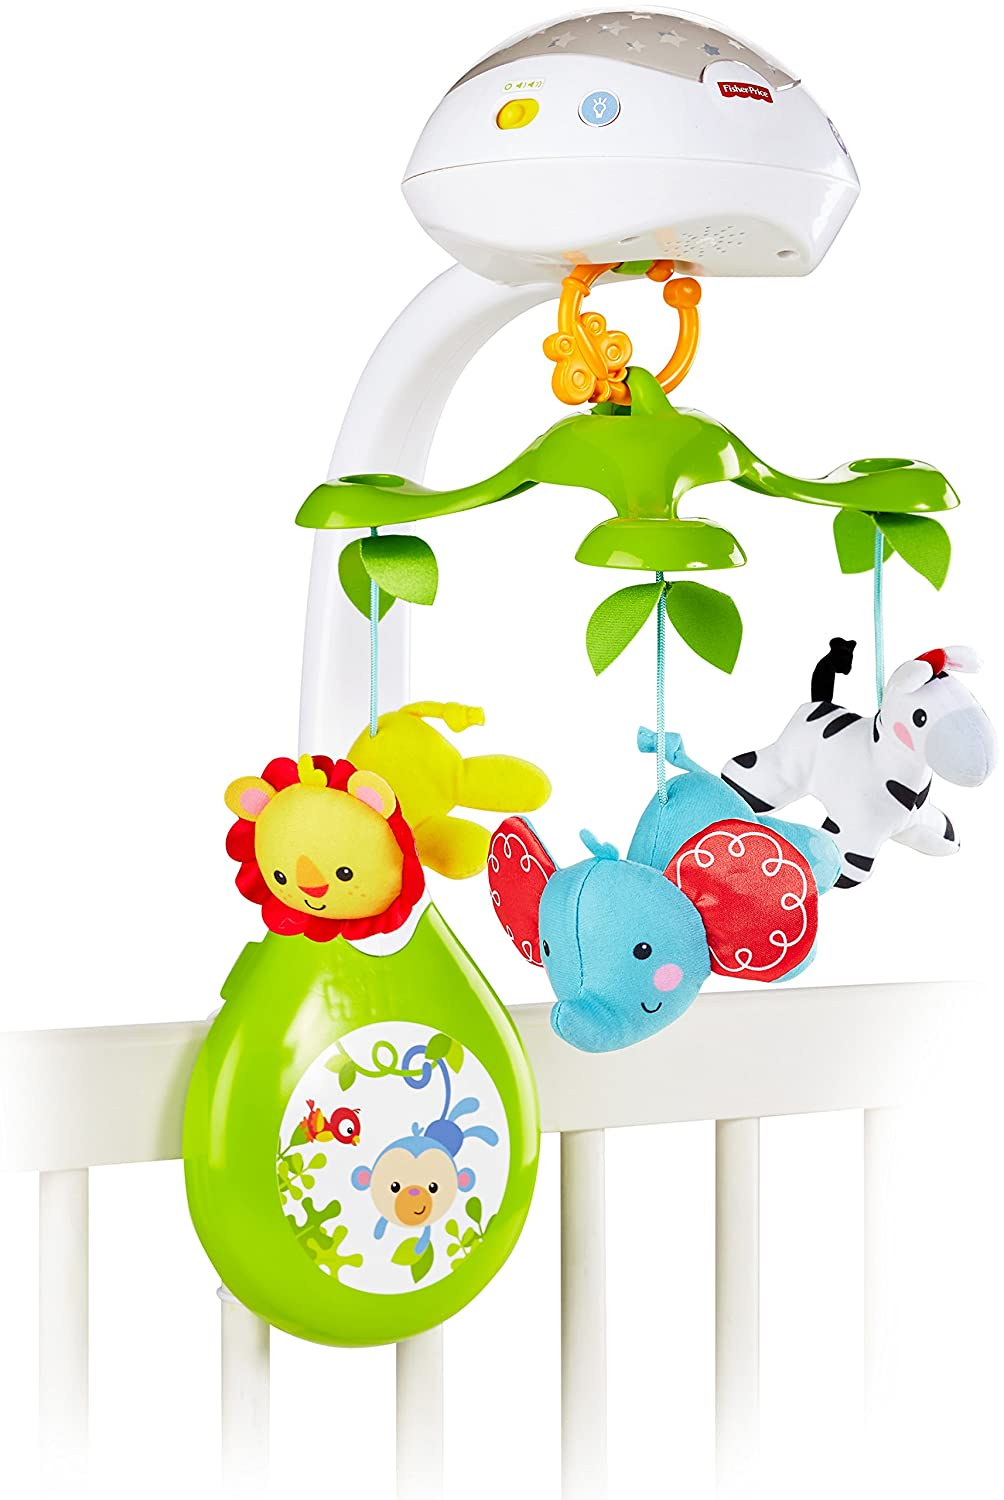 Amazon.com : Fisher-Price Deluxe Projection Mobile, Rainforest Friends  3-in-1 : Baby